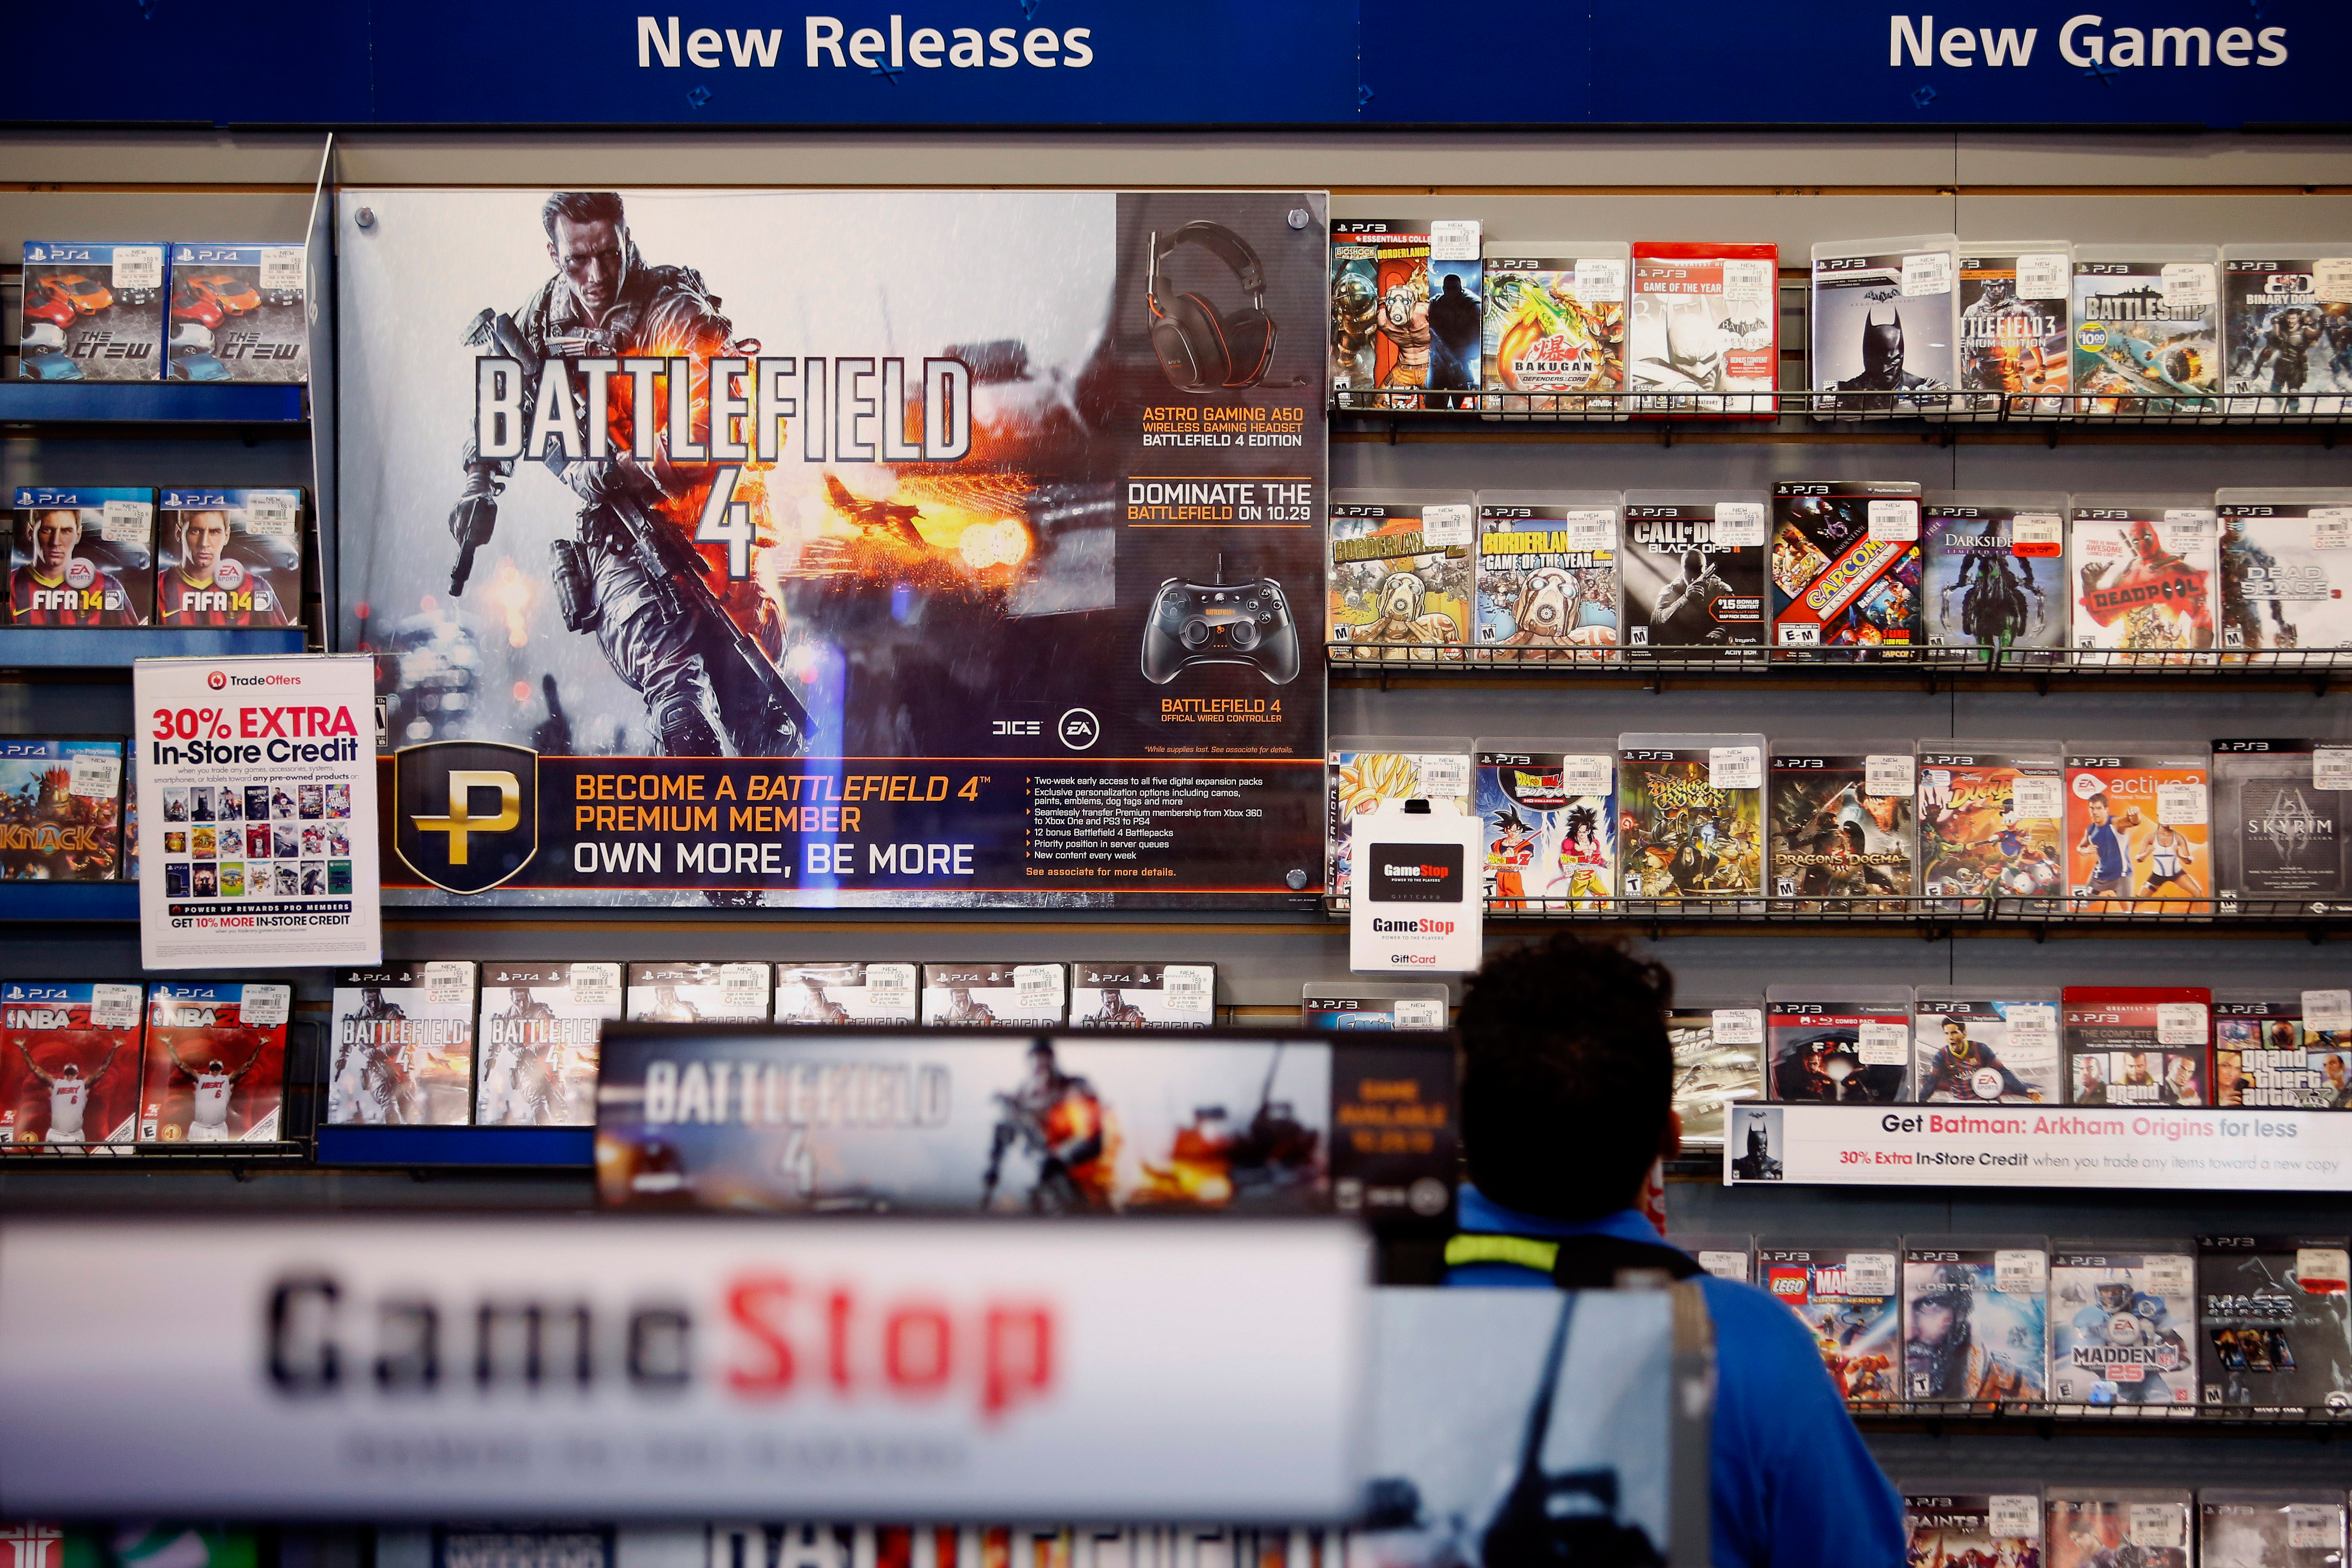 An Electronic Arts Inc. Battlefield 4 video game advertisement is displayed as a customer browses at a GameStop Corp. store in West Hollywood, California, U.S.